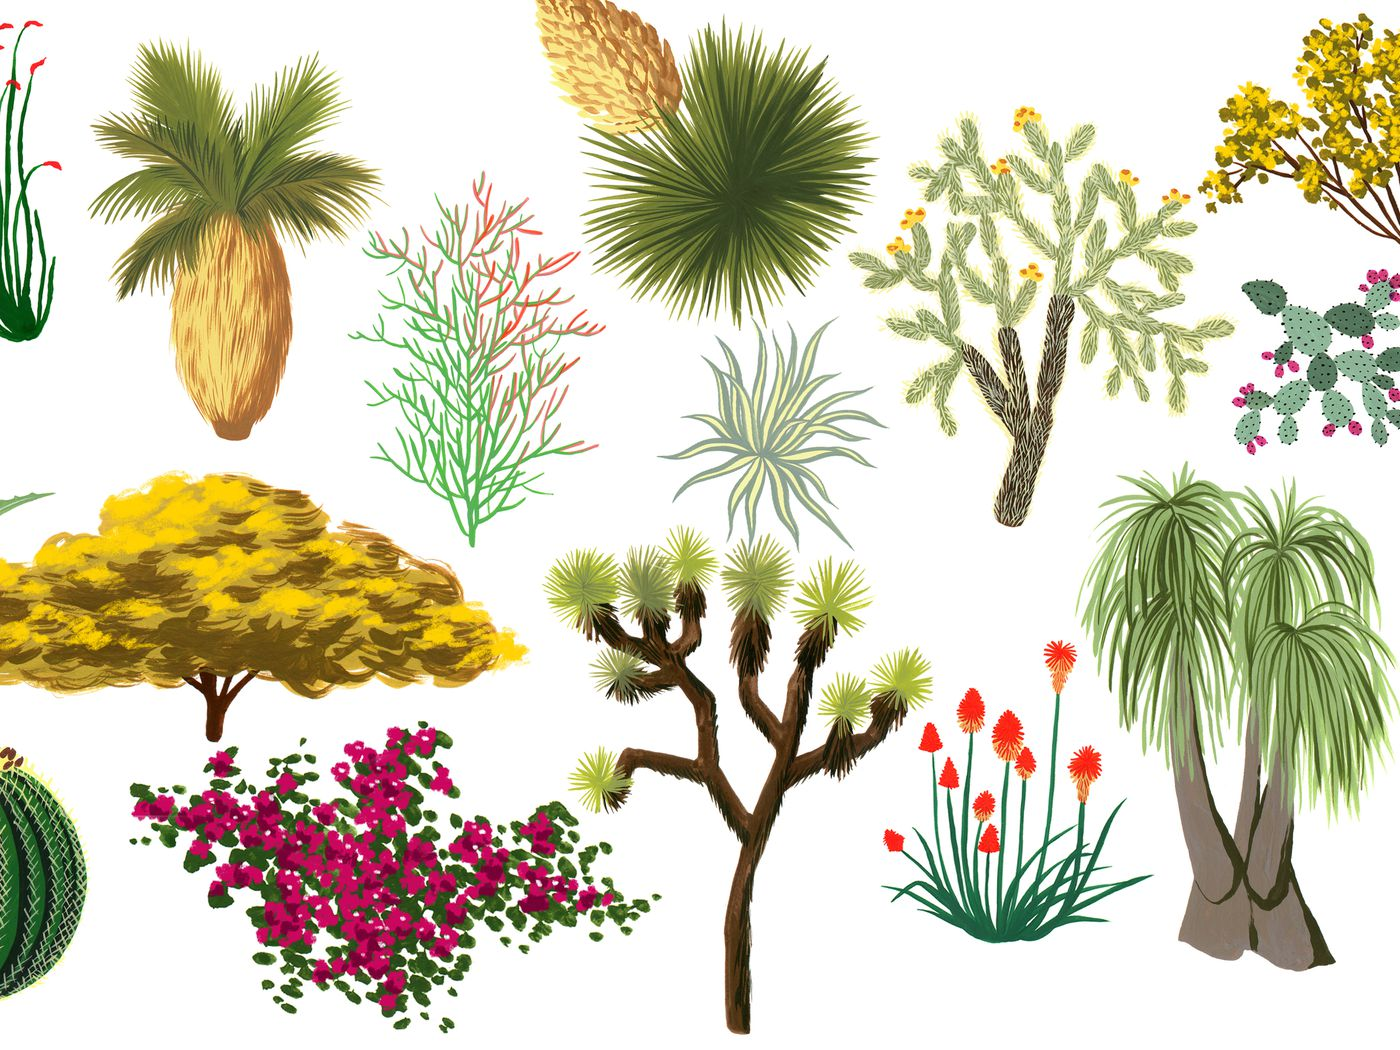 California Desert Plants An Illustrated Guide Curbed La